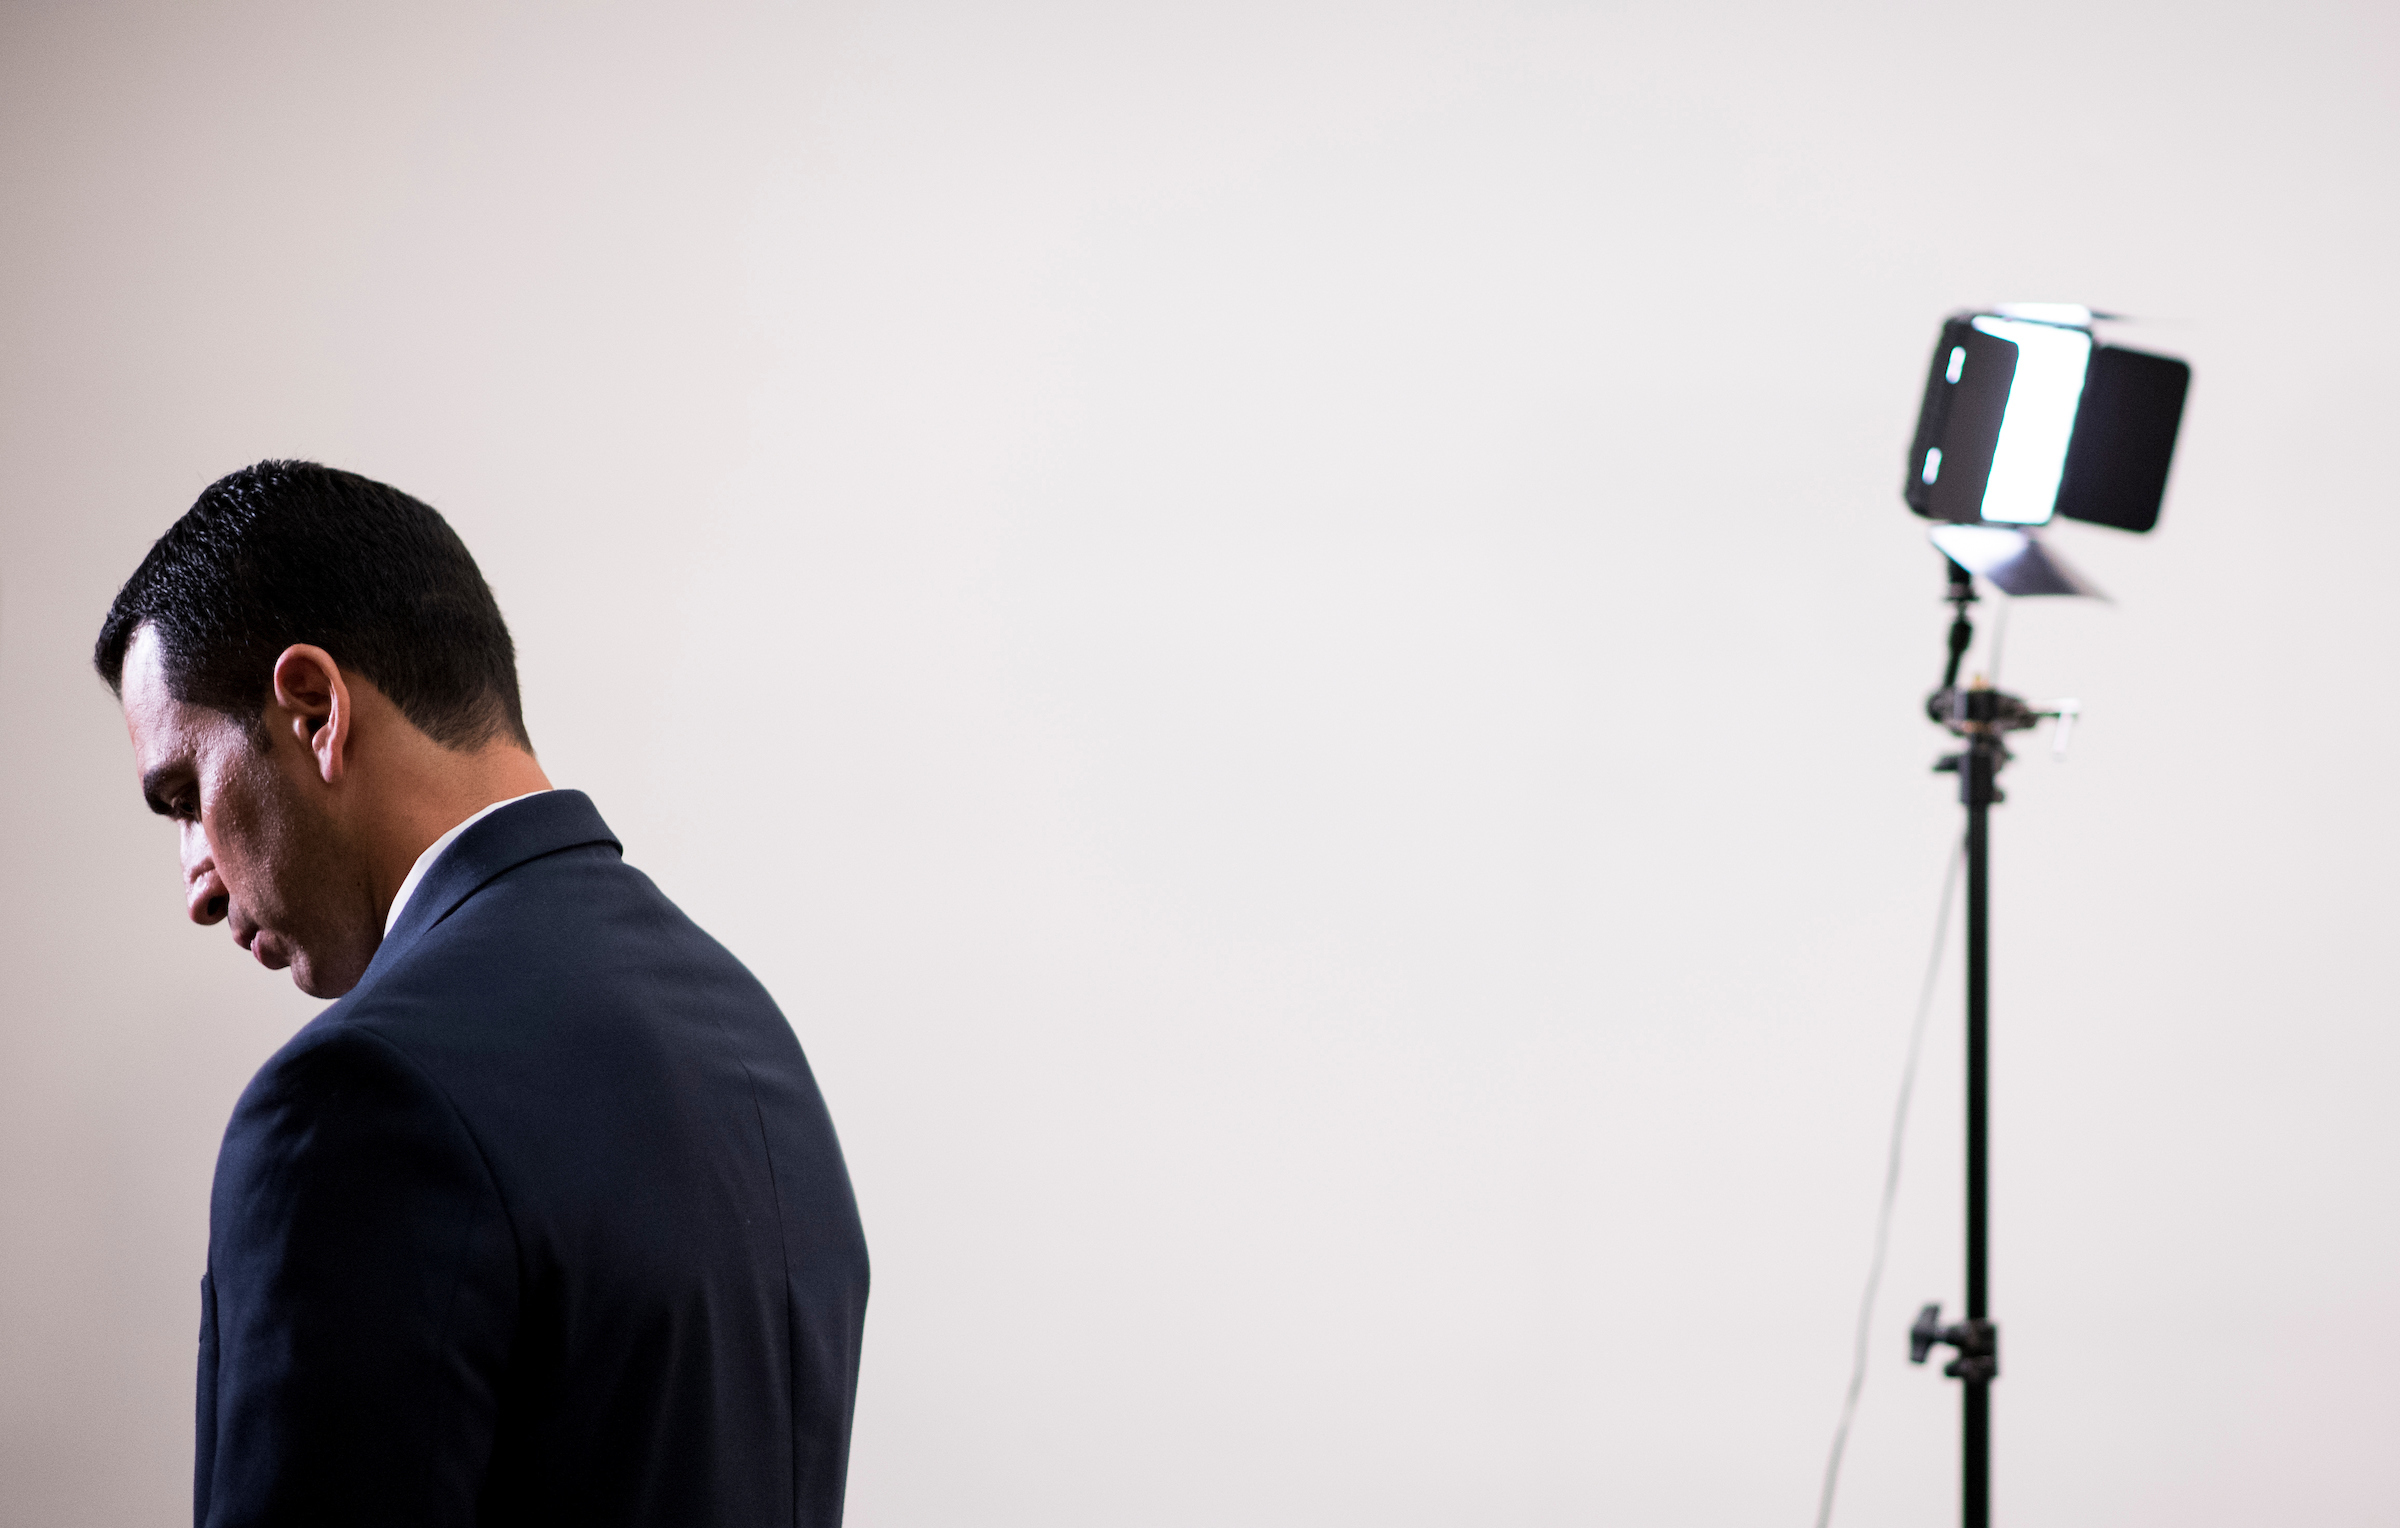 UNITED STATES - SEPTEMBER 5: Rep. Ruben Kihuen, D-Nev., prepares to do a live television interview with Univision after gathering in the Capitol with other House Democrats in solidarity with DREAMers and to speak out against President Trump's decision to end DACA on Tuesday, Sept. 5, 2017. (Photo By Bill Clark/CQ Roll Call)